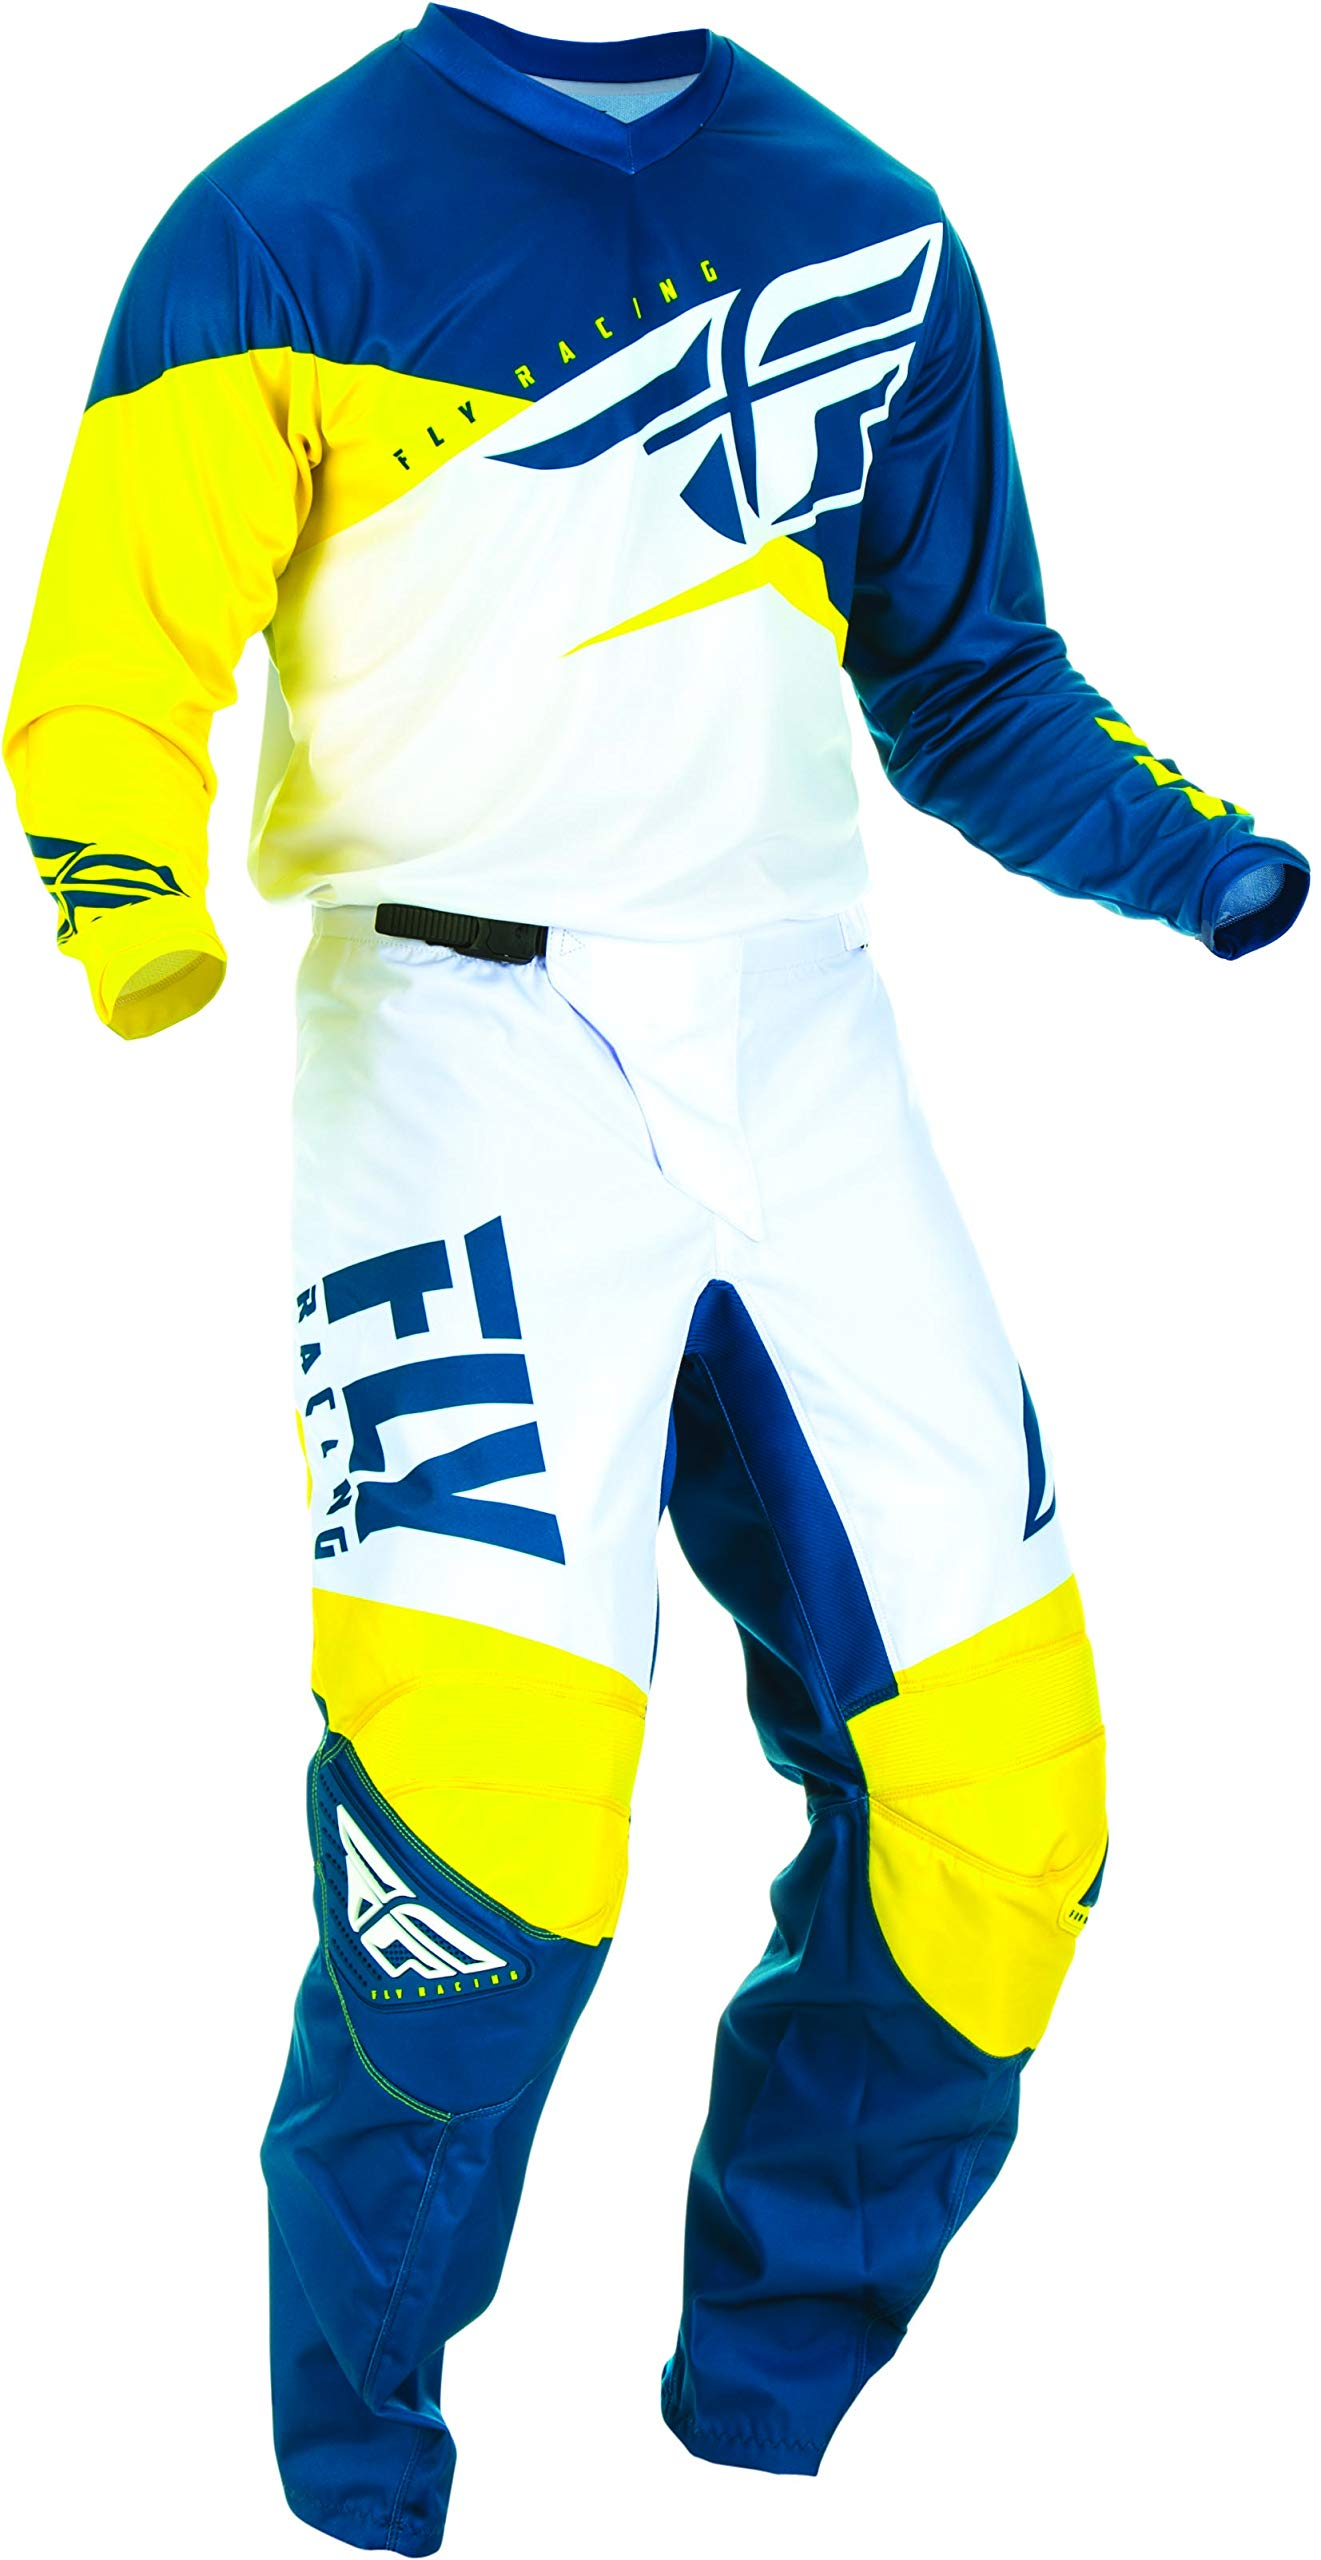 Fly Racing - 2019 F-16 (Mens Yellow & White & Navy X-Large/36W) MX Riding Gear Combo Set, Motocross Off-Road Dirt Bike Light Weight Durable Jersey & Mesh Comfort Liner Stretch Pre Shaped Knees Pant